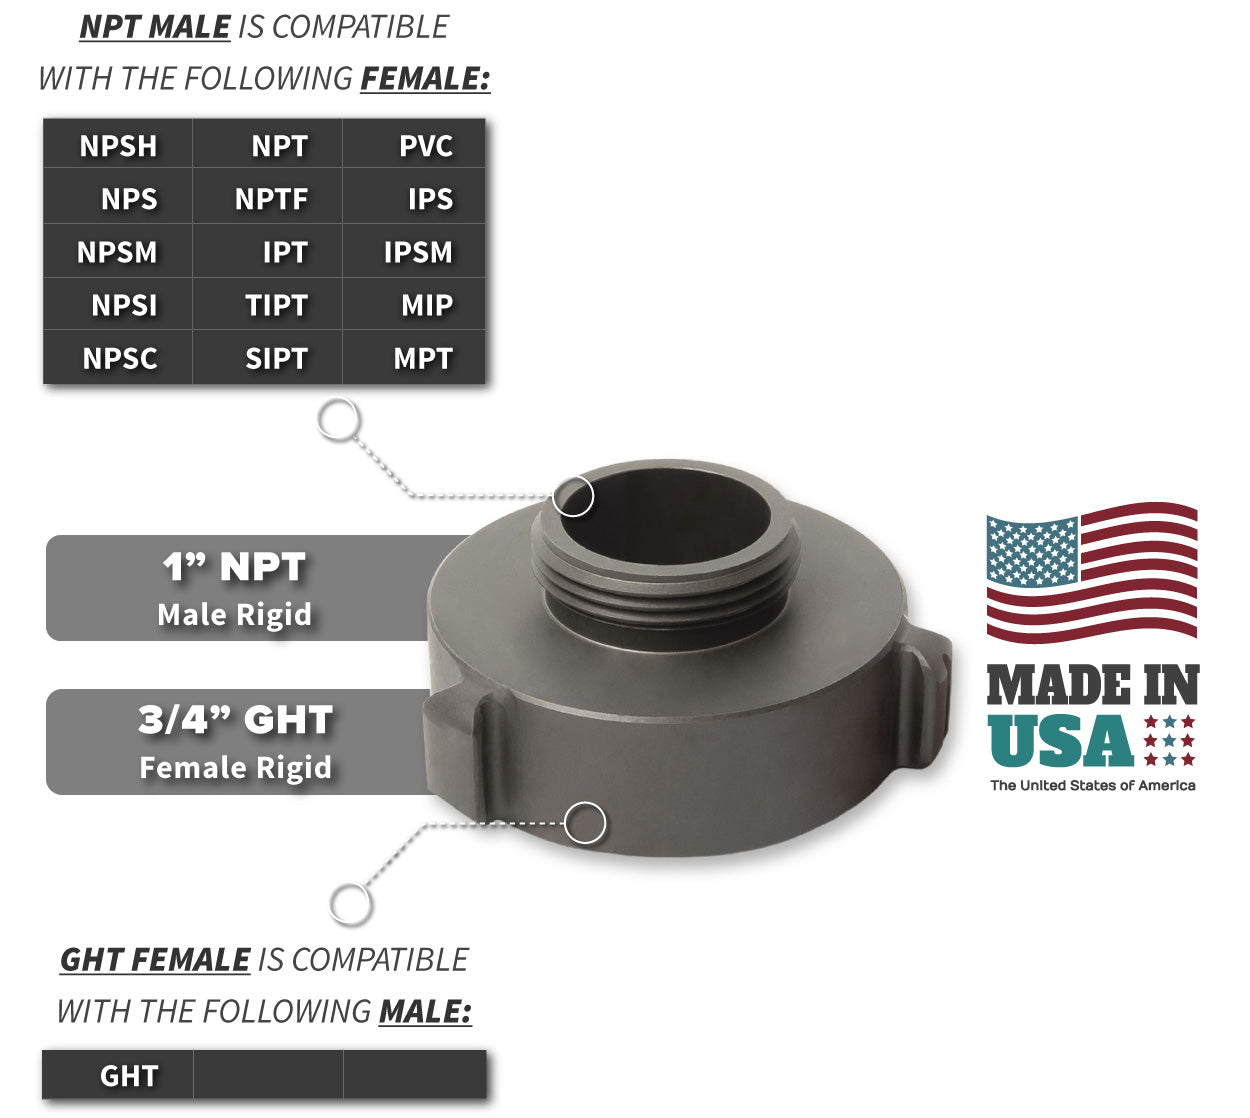 0.75 Inch GHT Female x 1 Inch NPT Male Compatibility Thread Chart